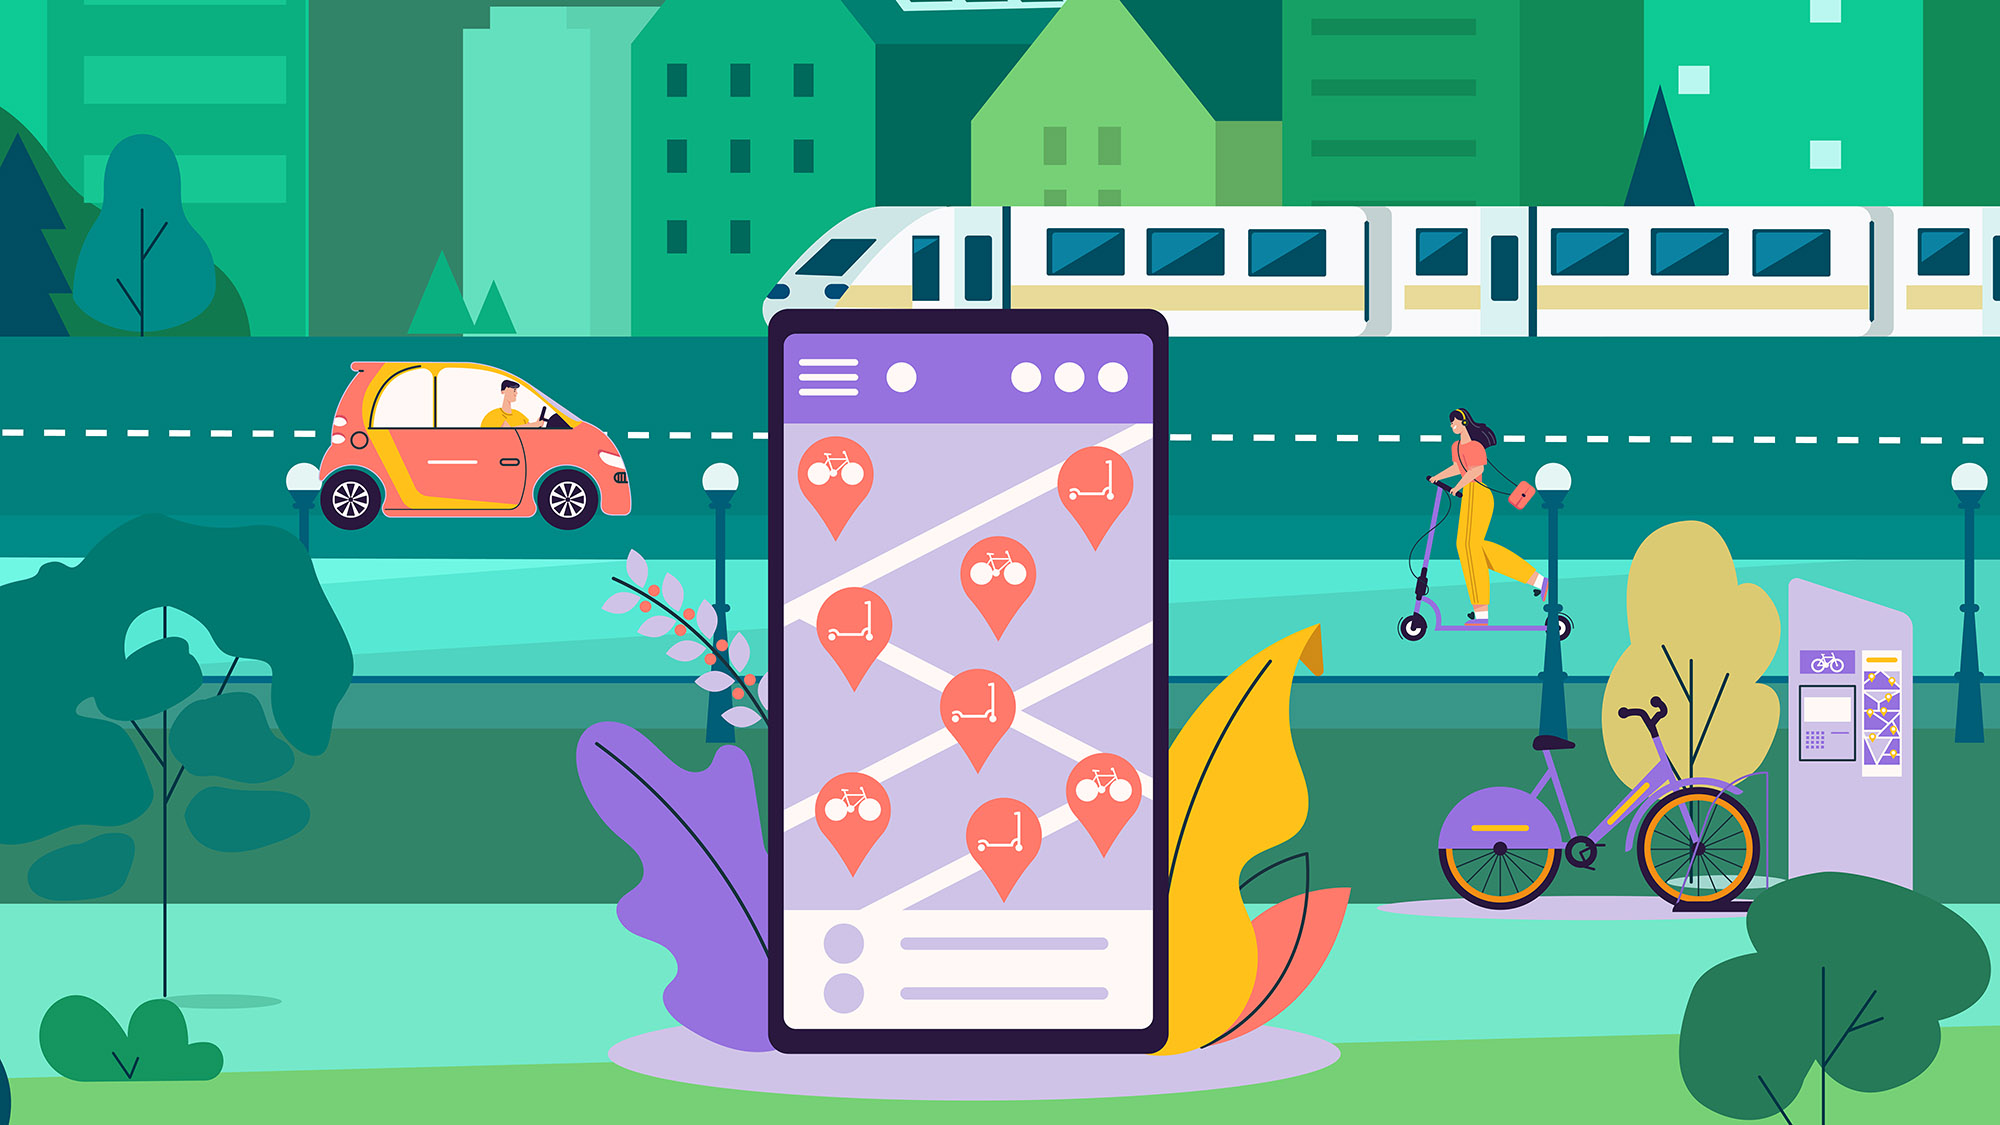 Graphic of mobile phone with transportation app on screen in foreground, different modes of transportation in background -- car, train, bike, scooter